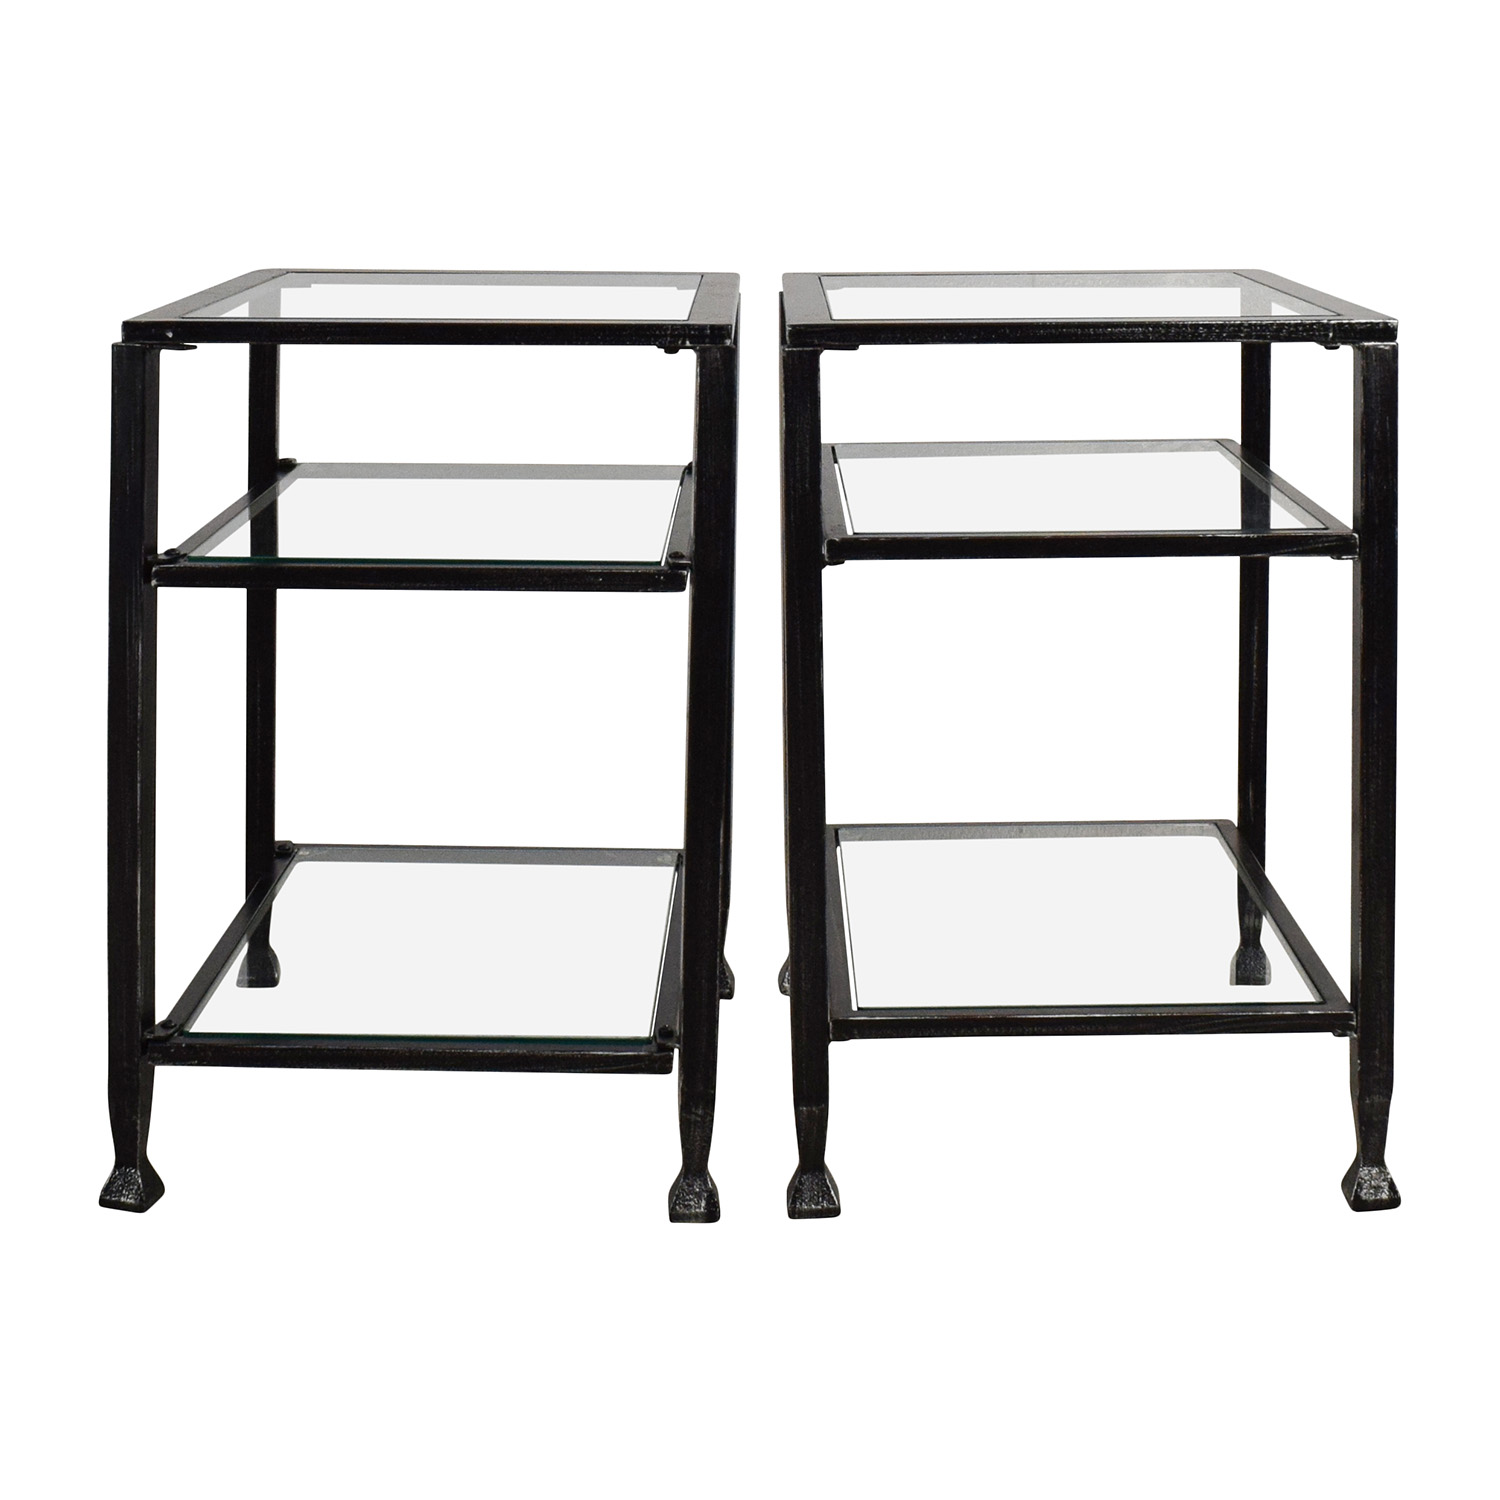 off harper blvd bunch metal glass end table pair coupon geometric home decor silver square coffee distressed furniture cherry nightstand under stackable tables and chairs